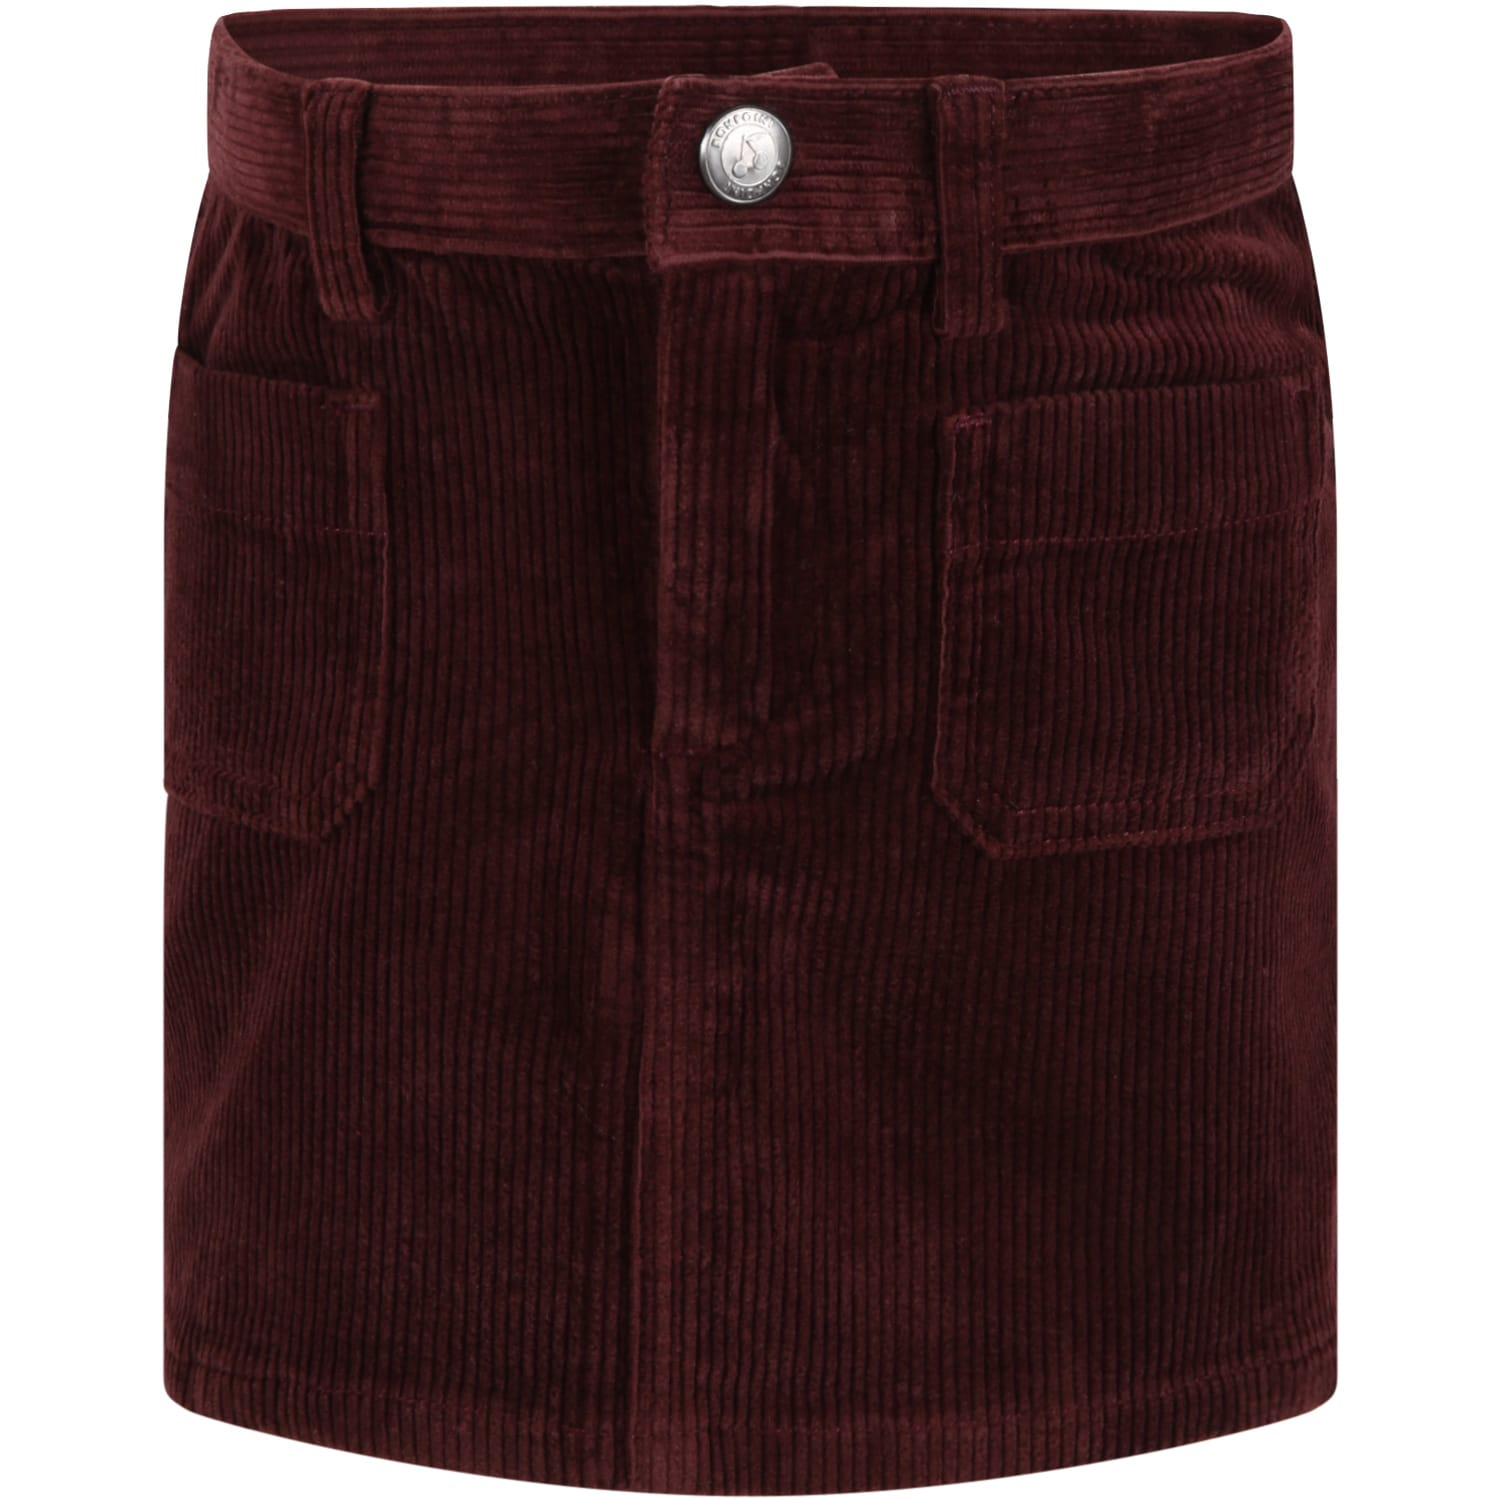 Burgundy Skirt For Girl With Logo Patch